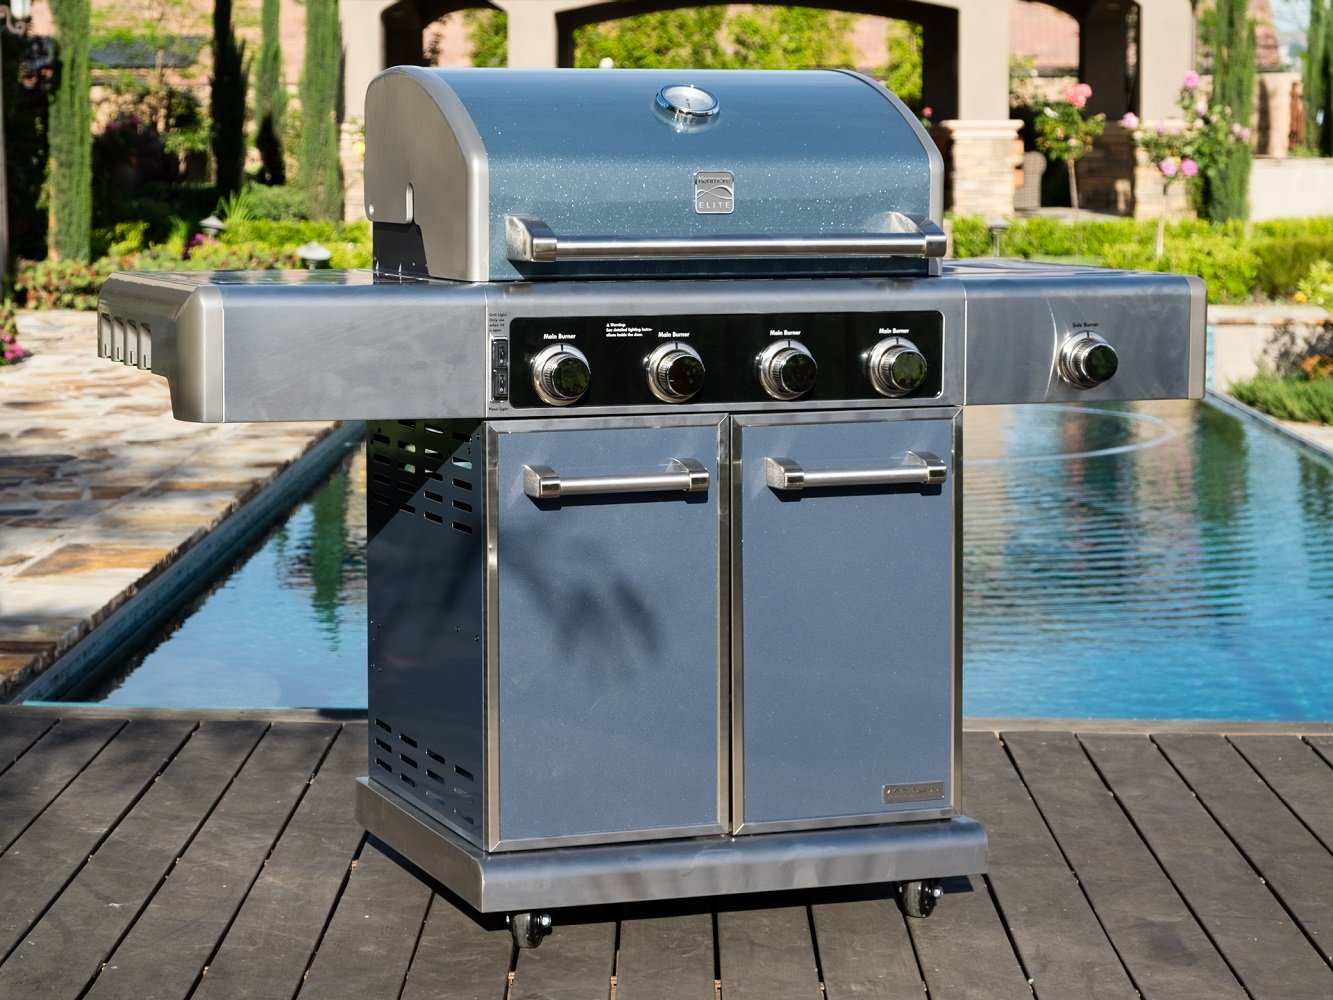 Amazon.com : KENMORE ELITE 4 Burner Grill plus Side Burner, Metallic ...